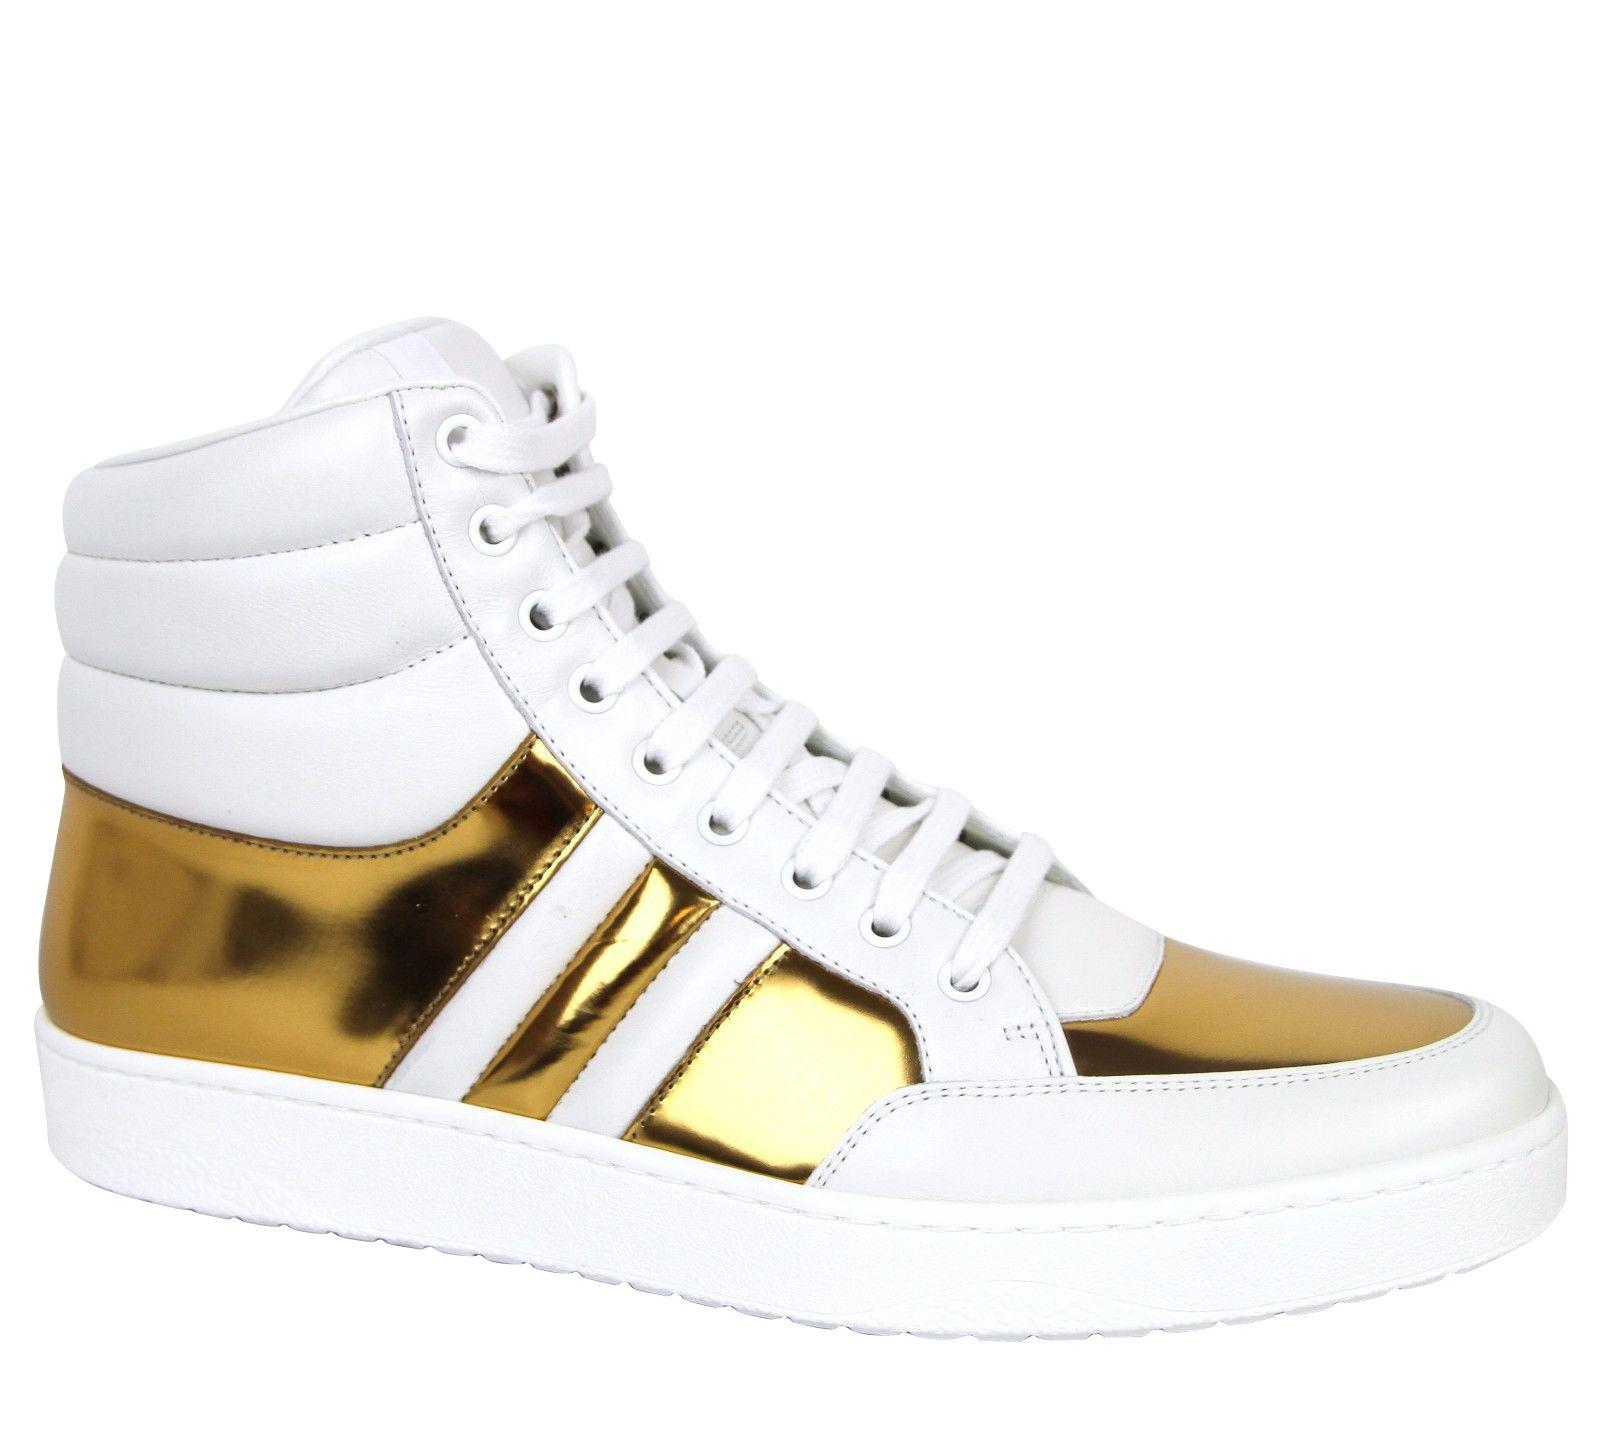 f4f6b14a7 Gucci - White High Top Contrast Padded Leather Sneaker 368494 for Men - Lyst.  View fullscreen